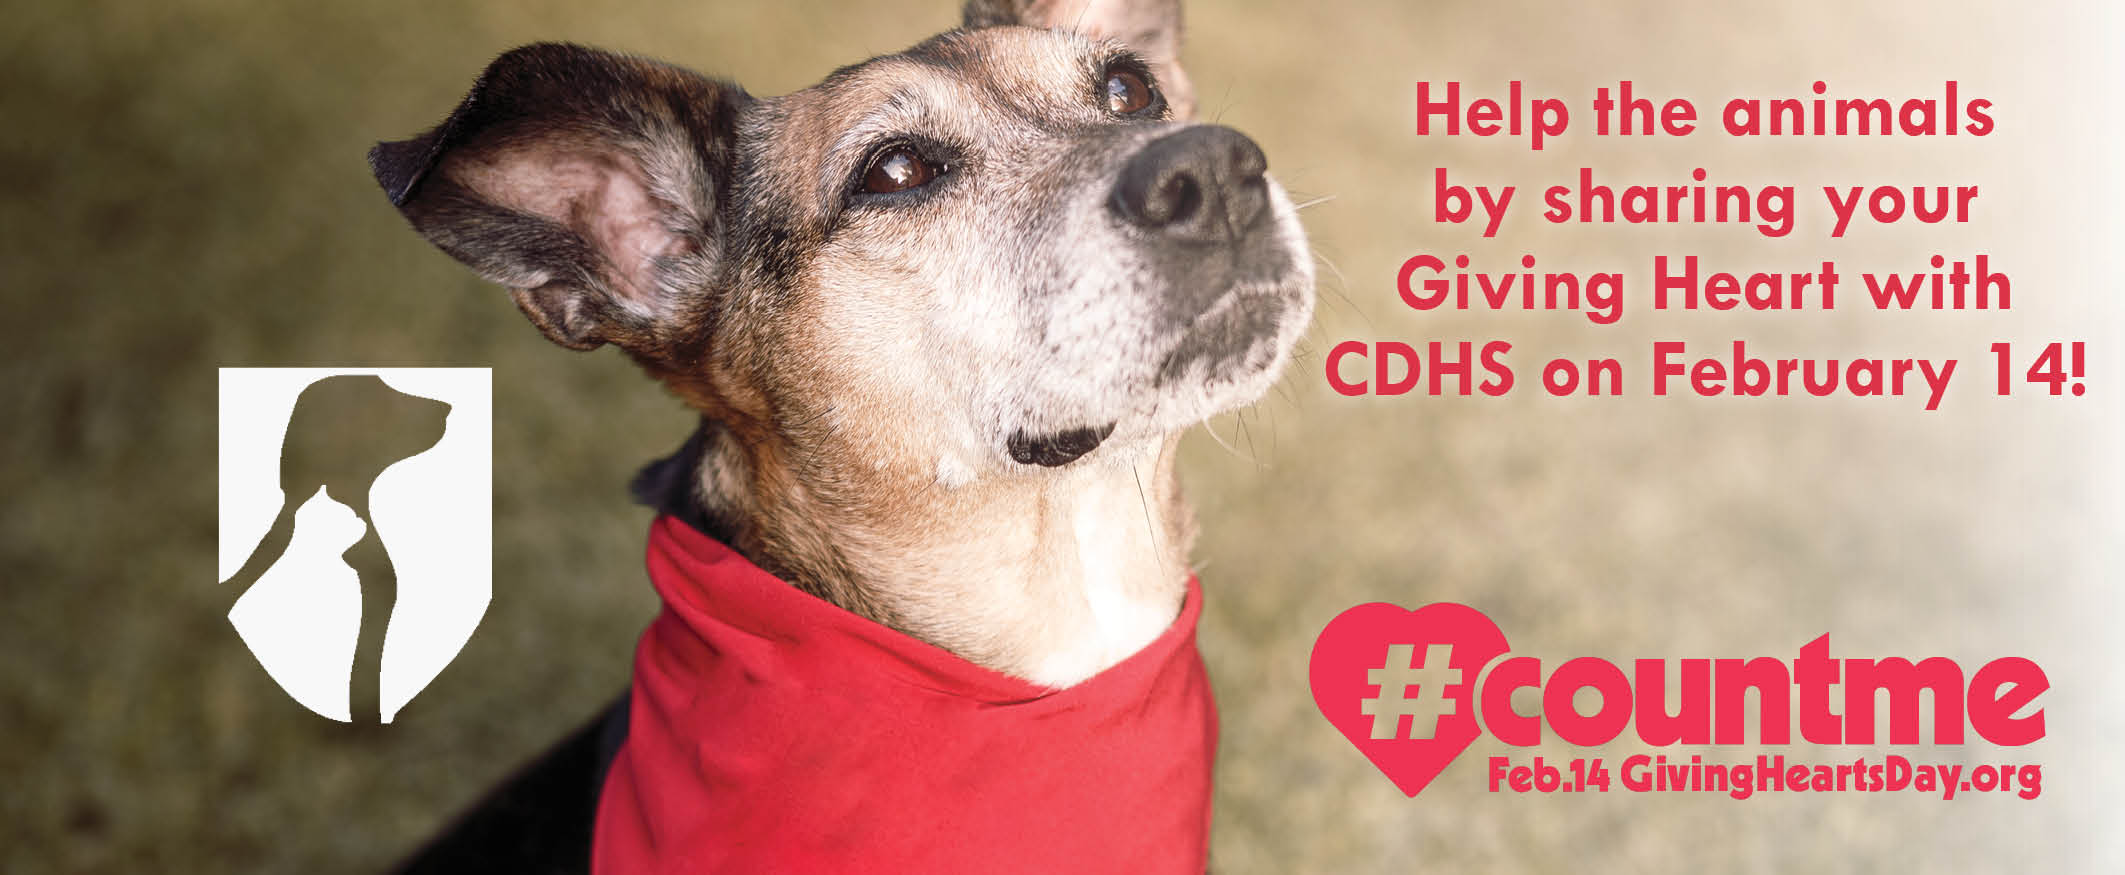 Donate to CDHS on Giving Hearts Day!